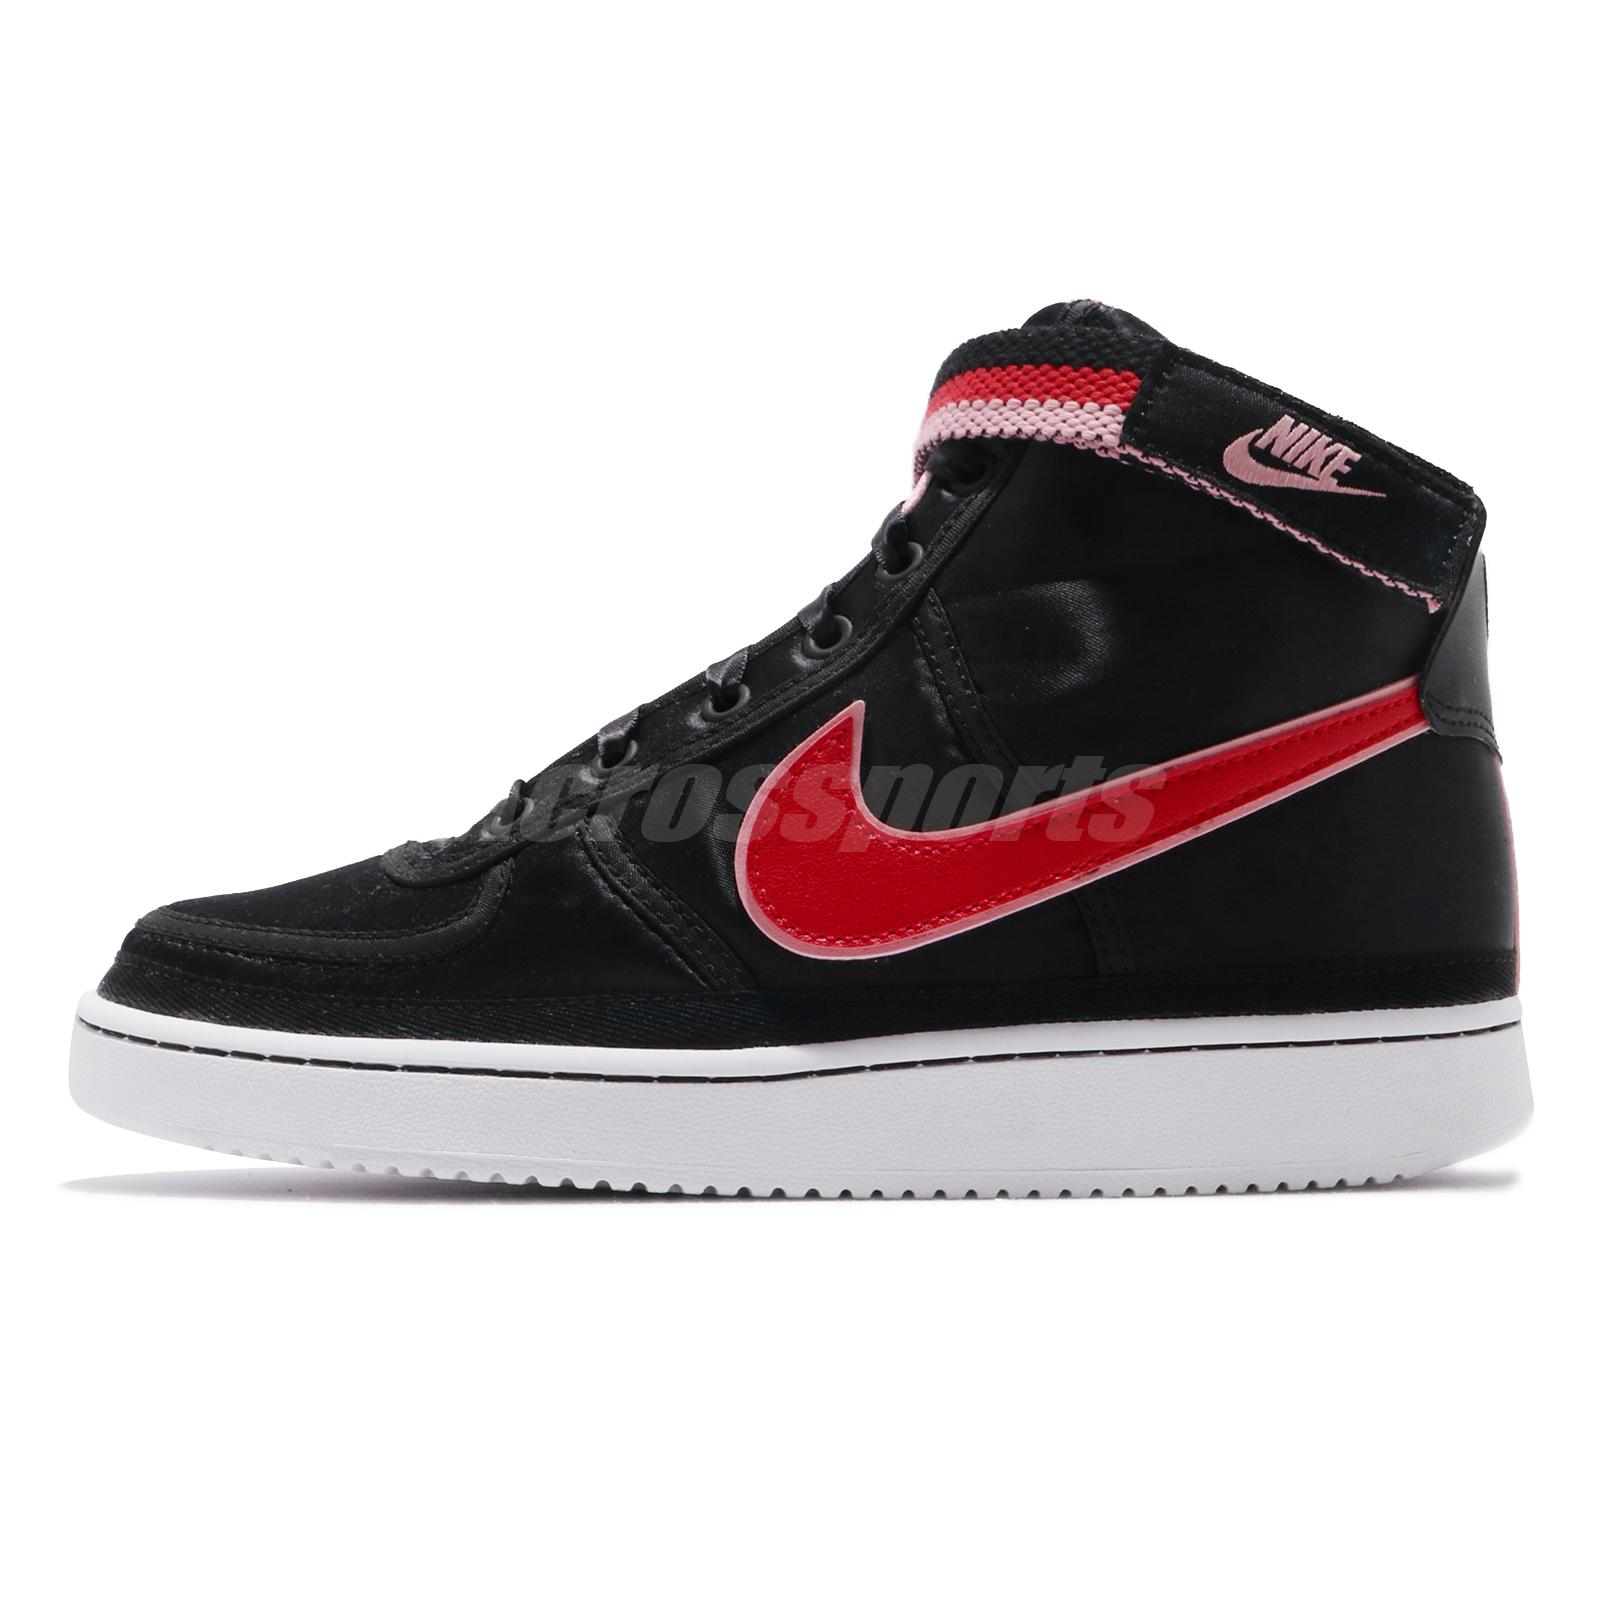 368f7ff4ee47 Details about Nike Vandal High Supreme QS (GS) Casual Kids Youth Womens Shoes  Black AQ3713-001